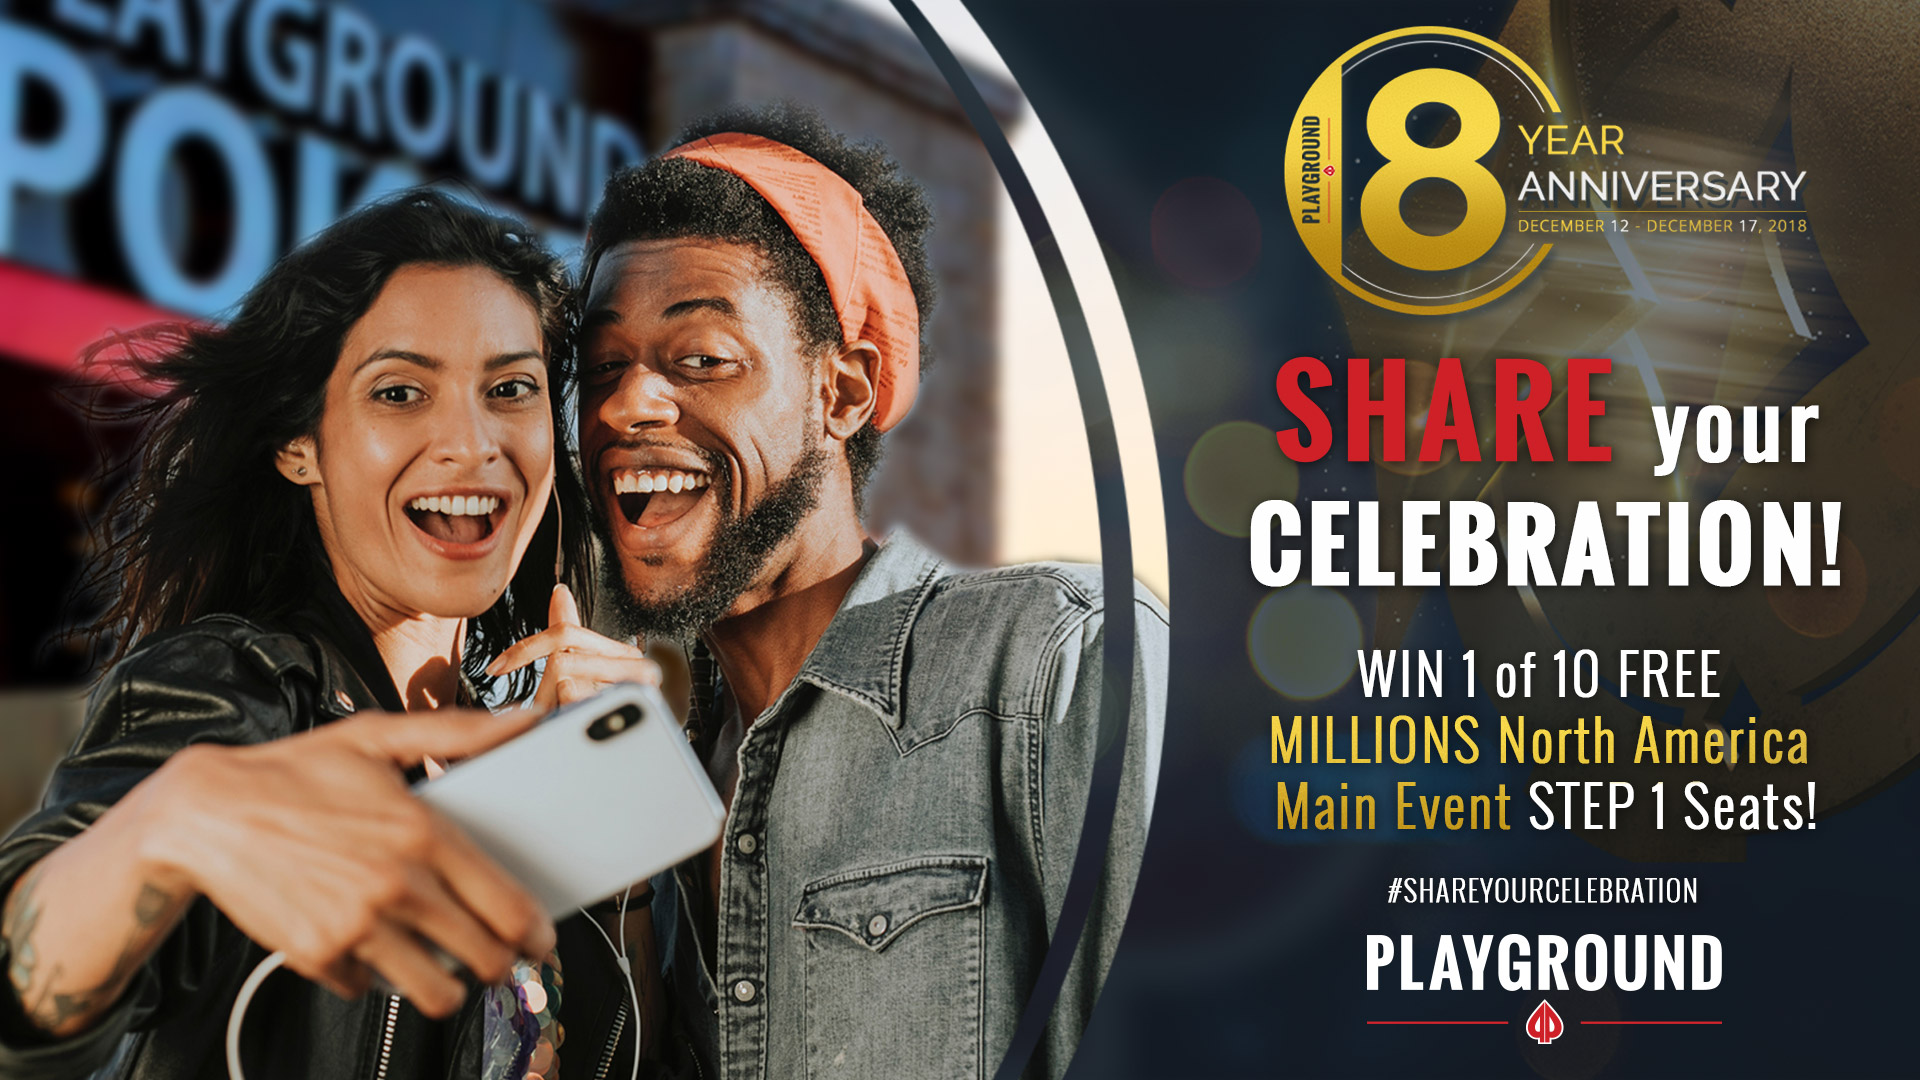 Share your Celebration for a chance at MILLIONS!